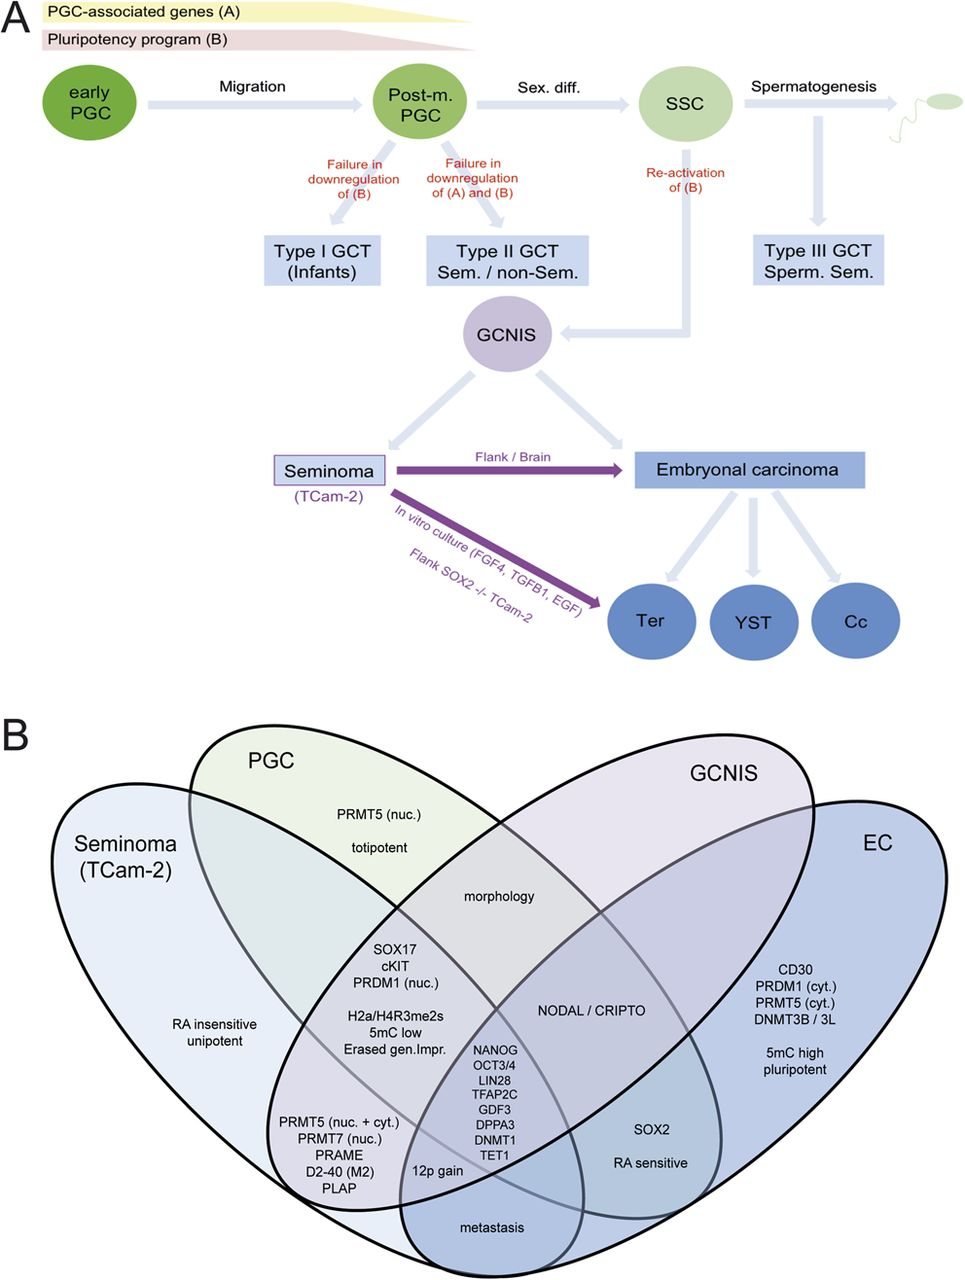 hight resolution of  b venn diagram summarizing commonly shared gene expressions and cellular molecular features between pgcs gcnis seminomas and ecs